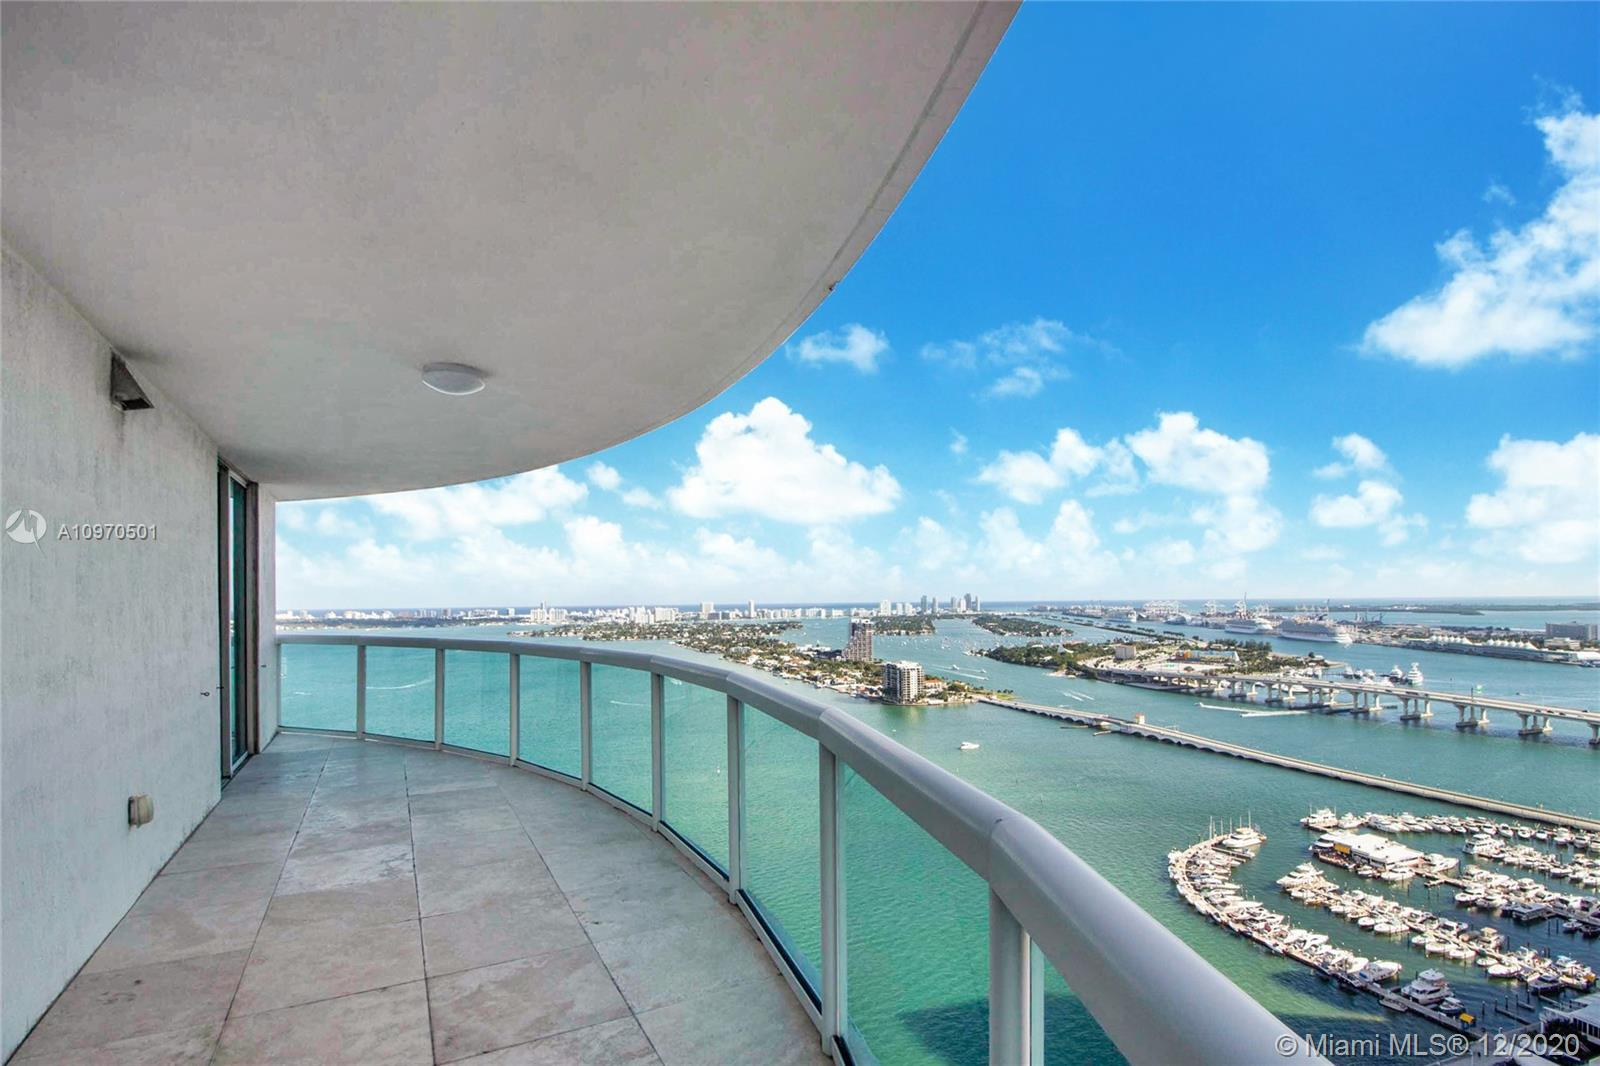 """Enjoy spectacular water views of Biscayne Bay and the ocean from this direct east facing high floor 3bed/3bath 2,189 SF residence in the luxury 1800 Club. With 638 SF of terrace space, this 40th floor """"01"""" line residence personifies Florida indoor/outdoor living. A spacious floor plan with an open kitchen allows for plenty of room to entertain while you enjoy the view. The master features a walk in closet and ensuite bath. The 1800 Club is known for its full service amenities including: valet, doorman, concierge, pool and fitness center attendant, resort style pool deck, and much more.. Walk to Margaret Pace Park. Only a short drive to Wynwood, Midtown restaurants Design District shops, and Miami nightlife."""